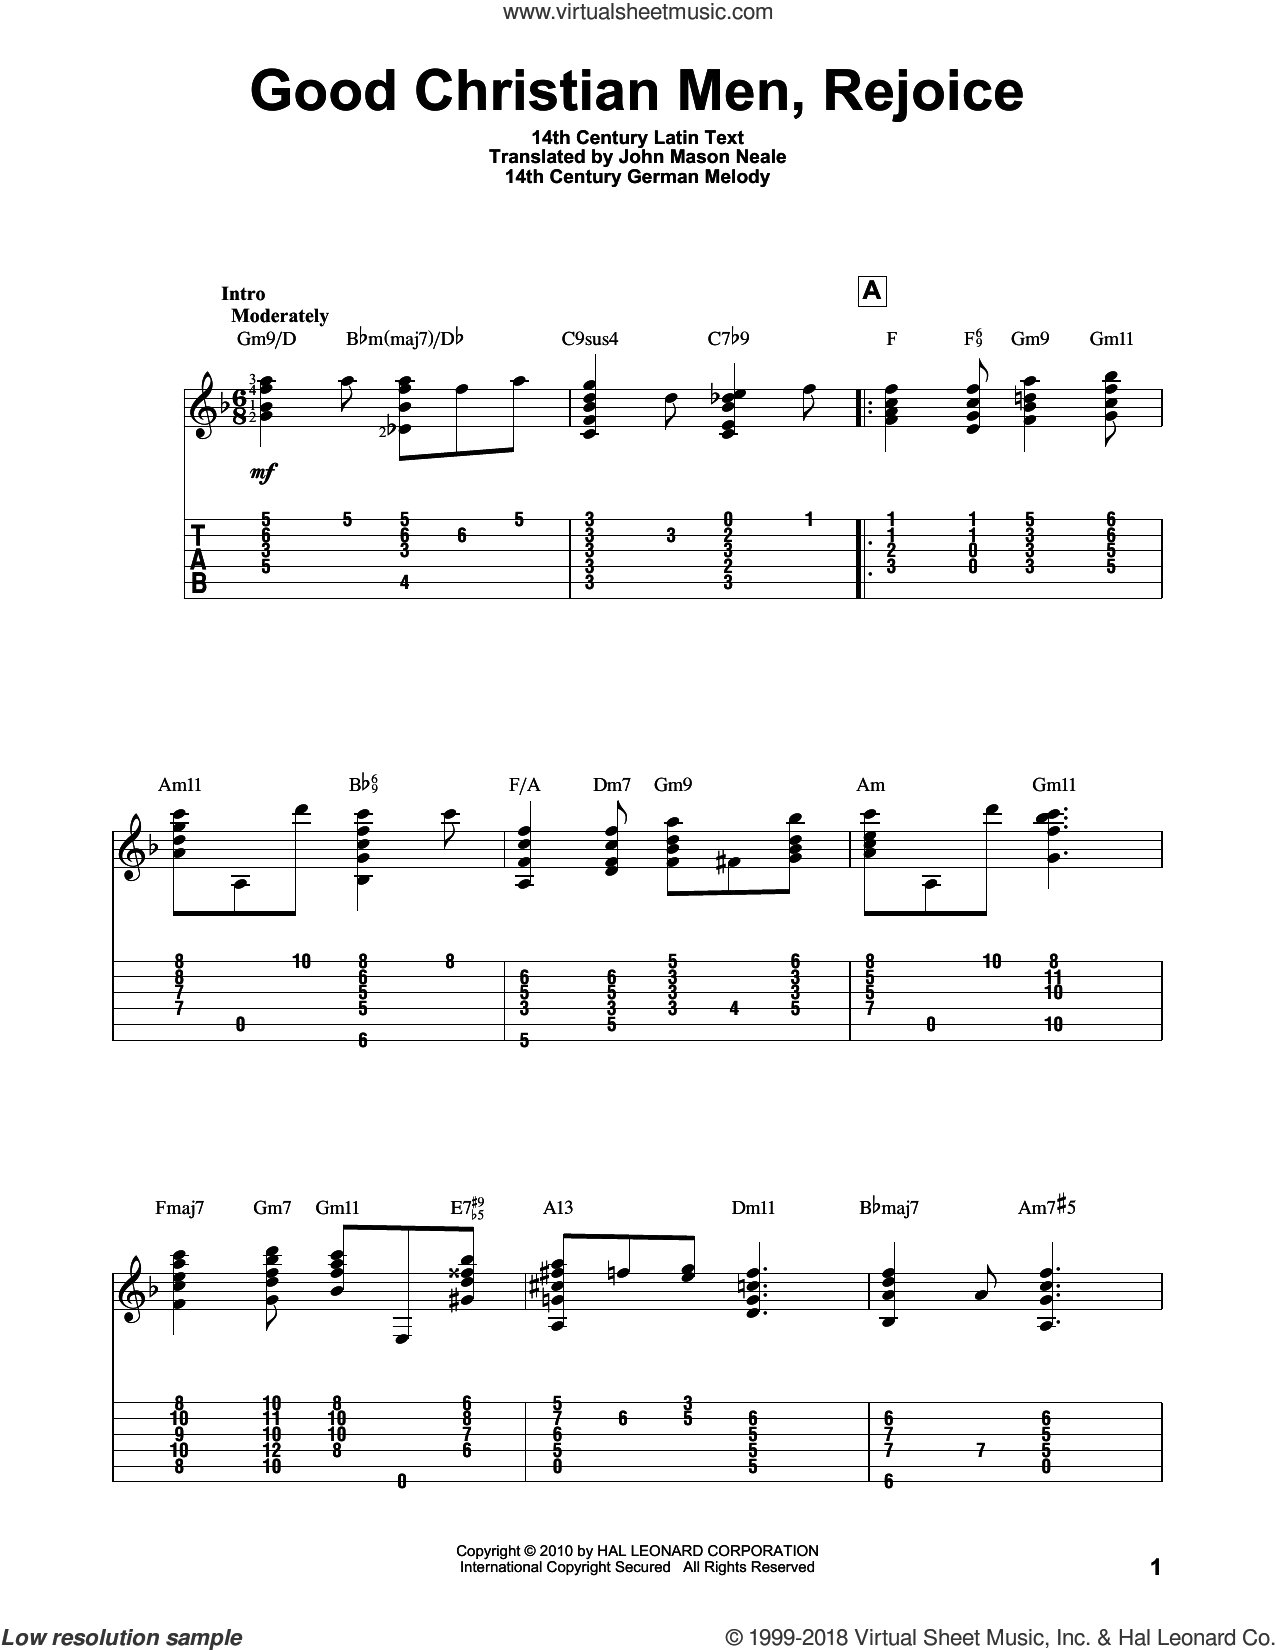 Good Christian Men, Rejoice sheet music for guitar solo by 14th Century German Melody and John Mason Neale. Score Image Preview.